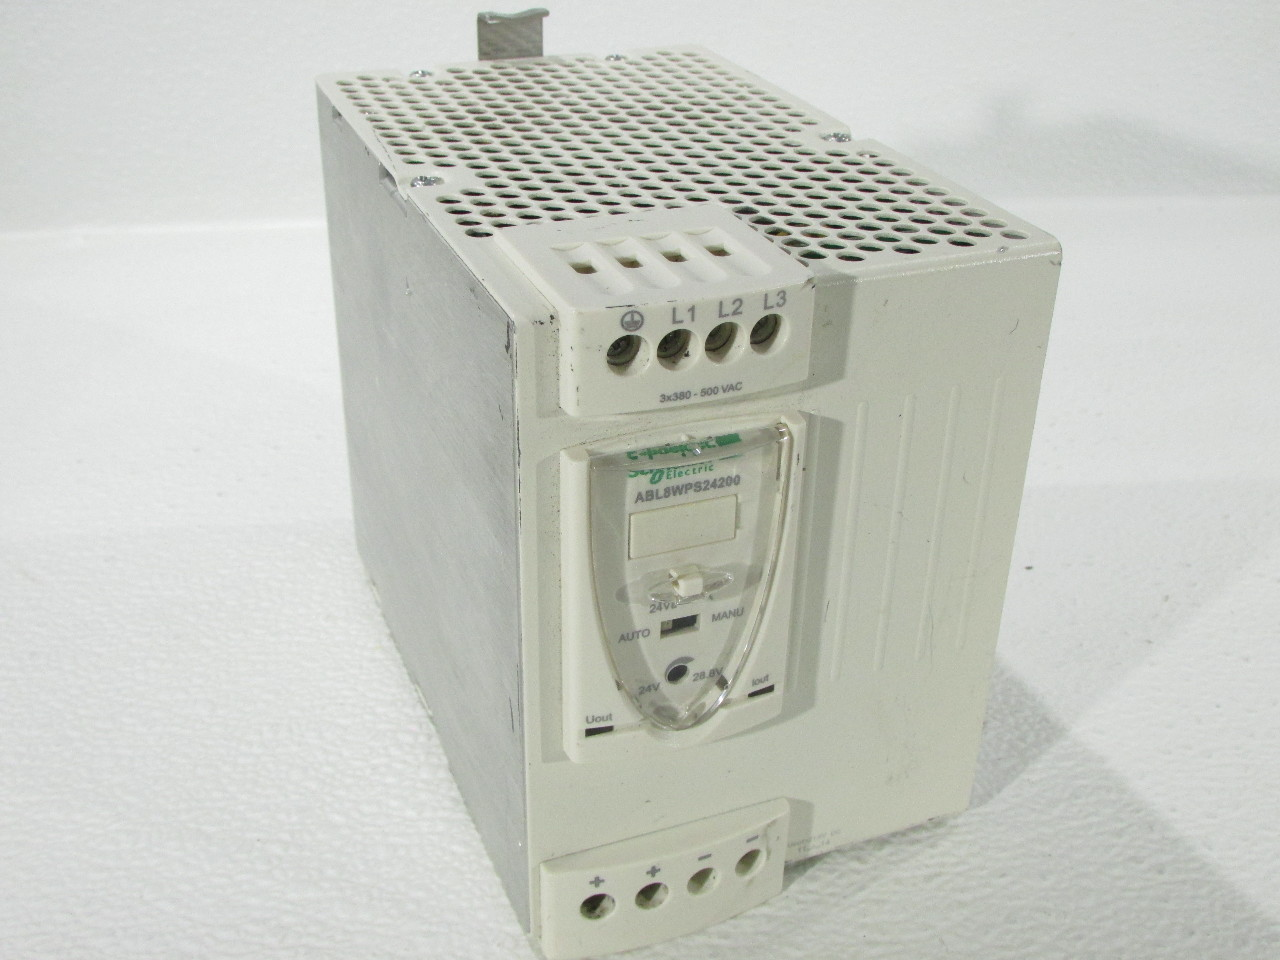 SCHNEIDER ELECTRIC ABL8WPS24200 POWER SUPPLY 24VDC 20AMP PHASEO | Premier  Equipment Solutions, Inc